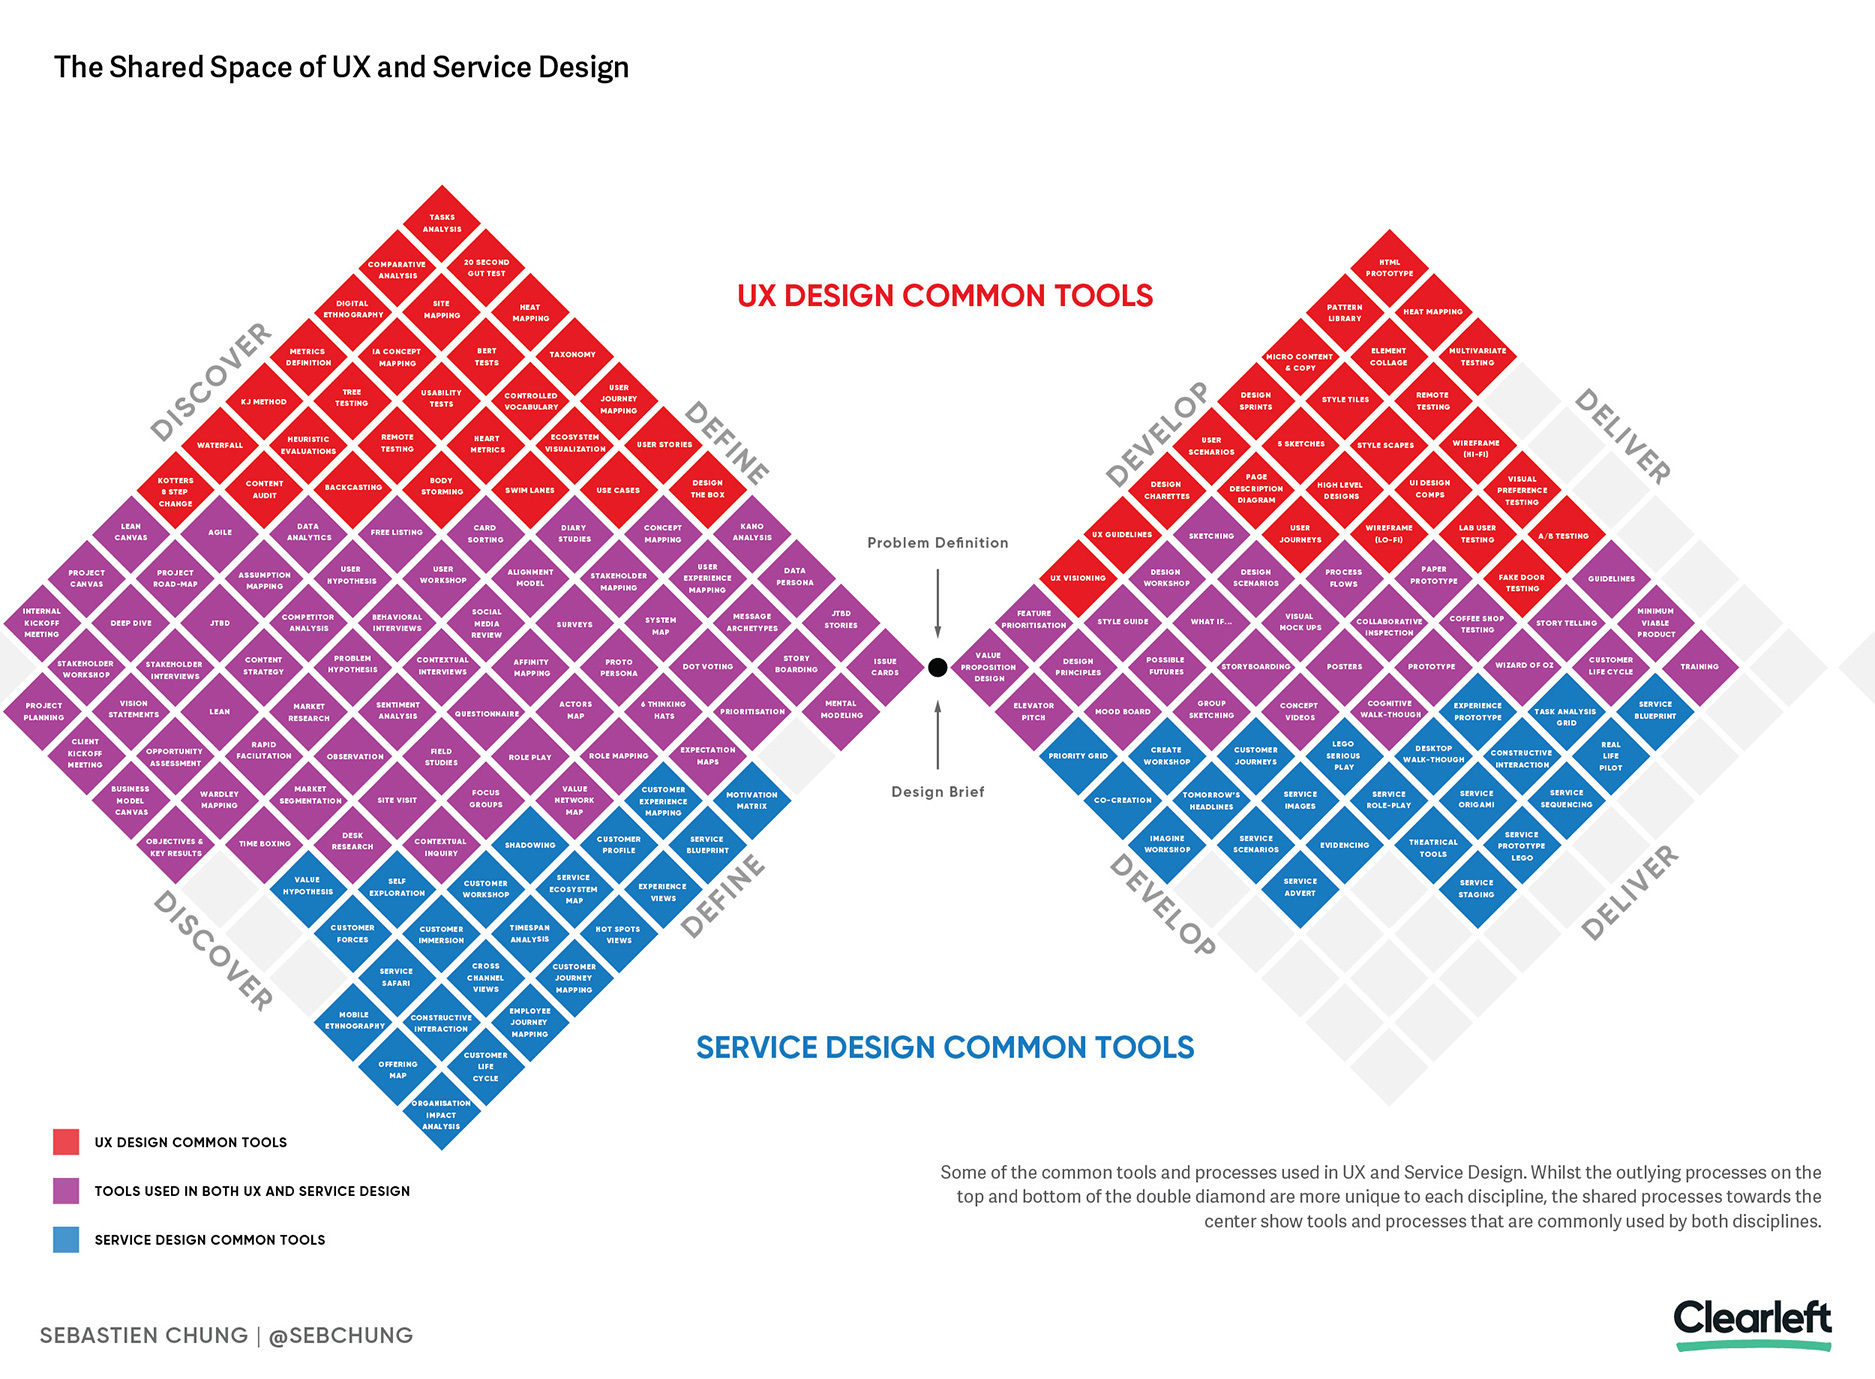 AN ILLUSTRATION OF THE SHARED SPACE BETWEEN UX AND SERVICE DESIGN